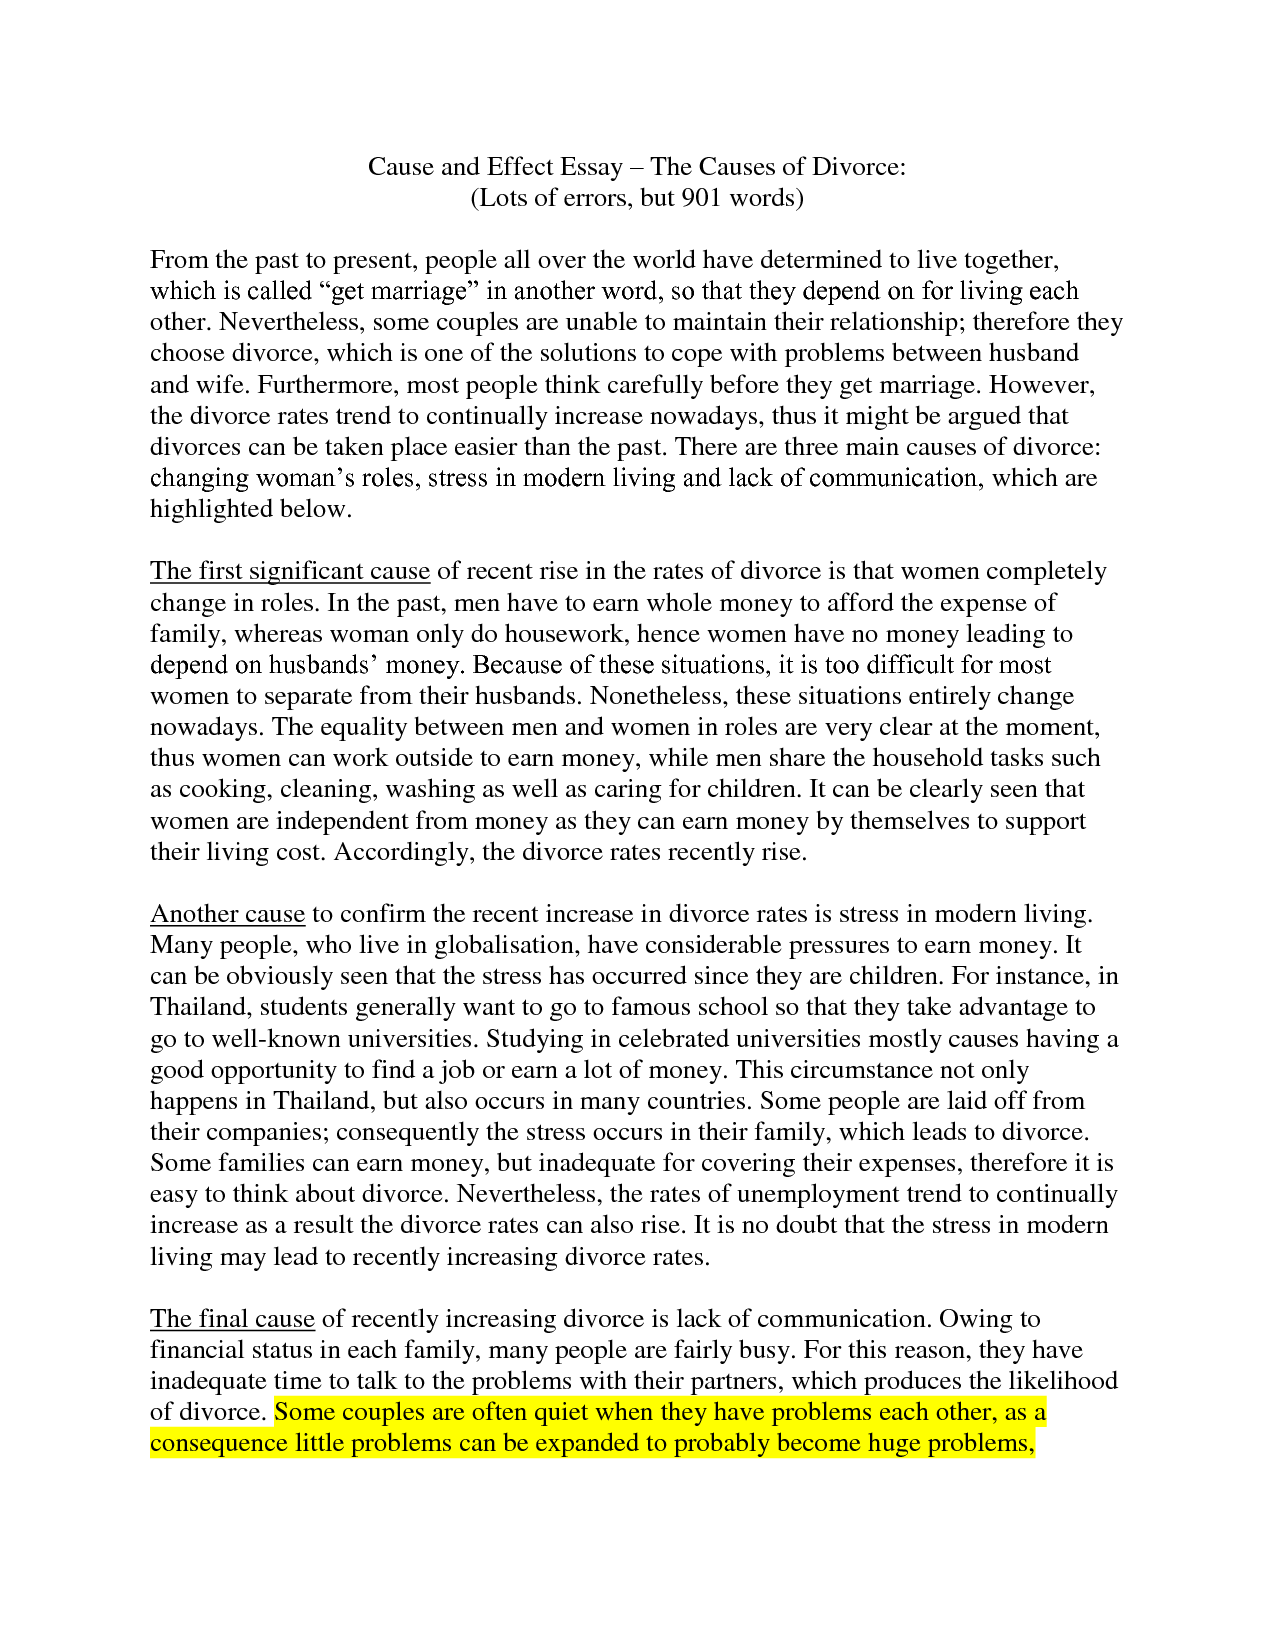 007 Essay Example Brilliant Ideas Of Caused Effect Write Ethics Fabulous The Causes Effects Smoking Sample Impressive Cause And Questions On Sleep Deprivation Bullying Full